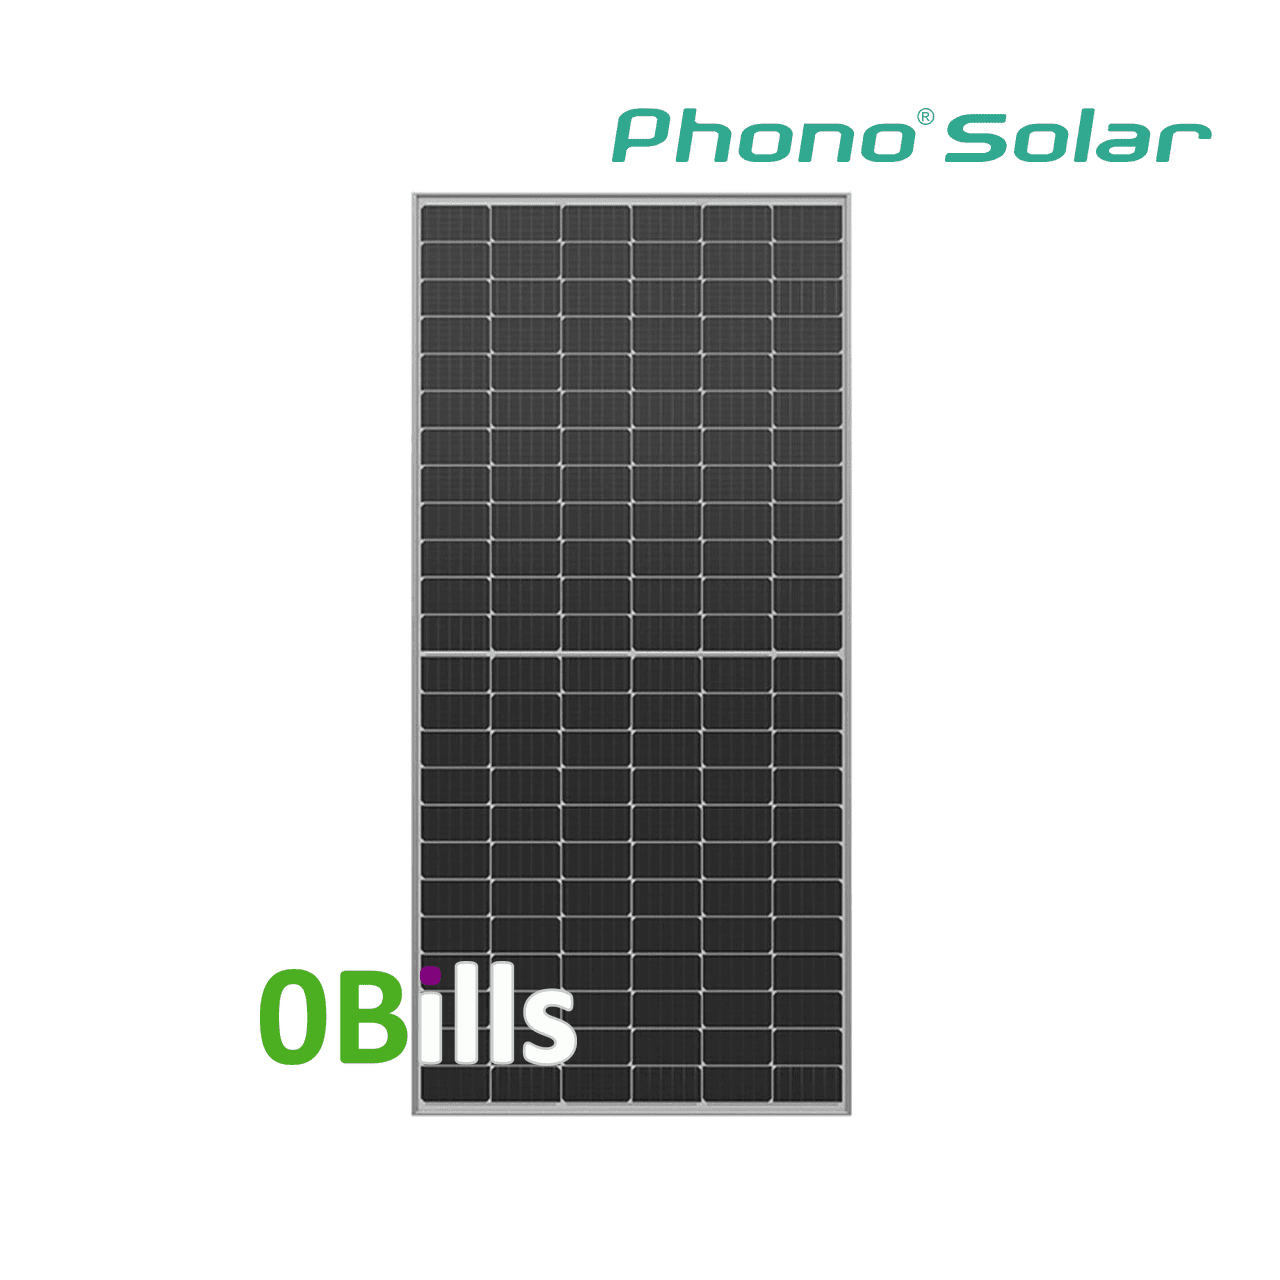 Phone Solar TwinPlus 400W Solar Panel PS400M1H-24-TH for Sale